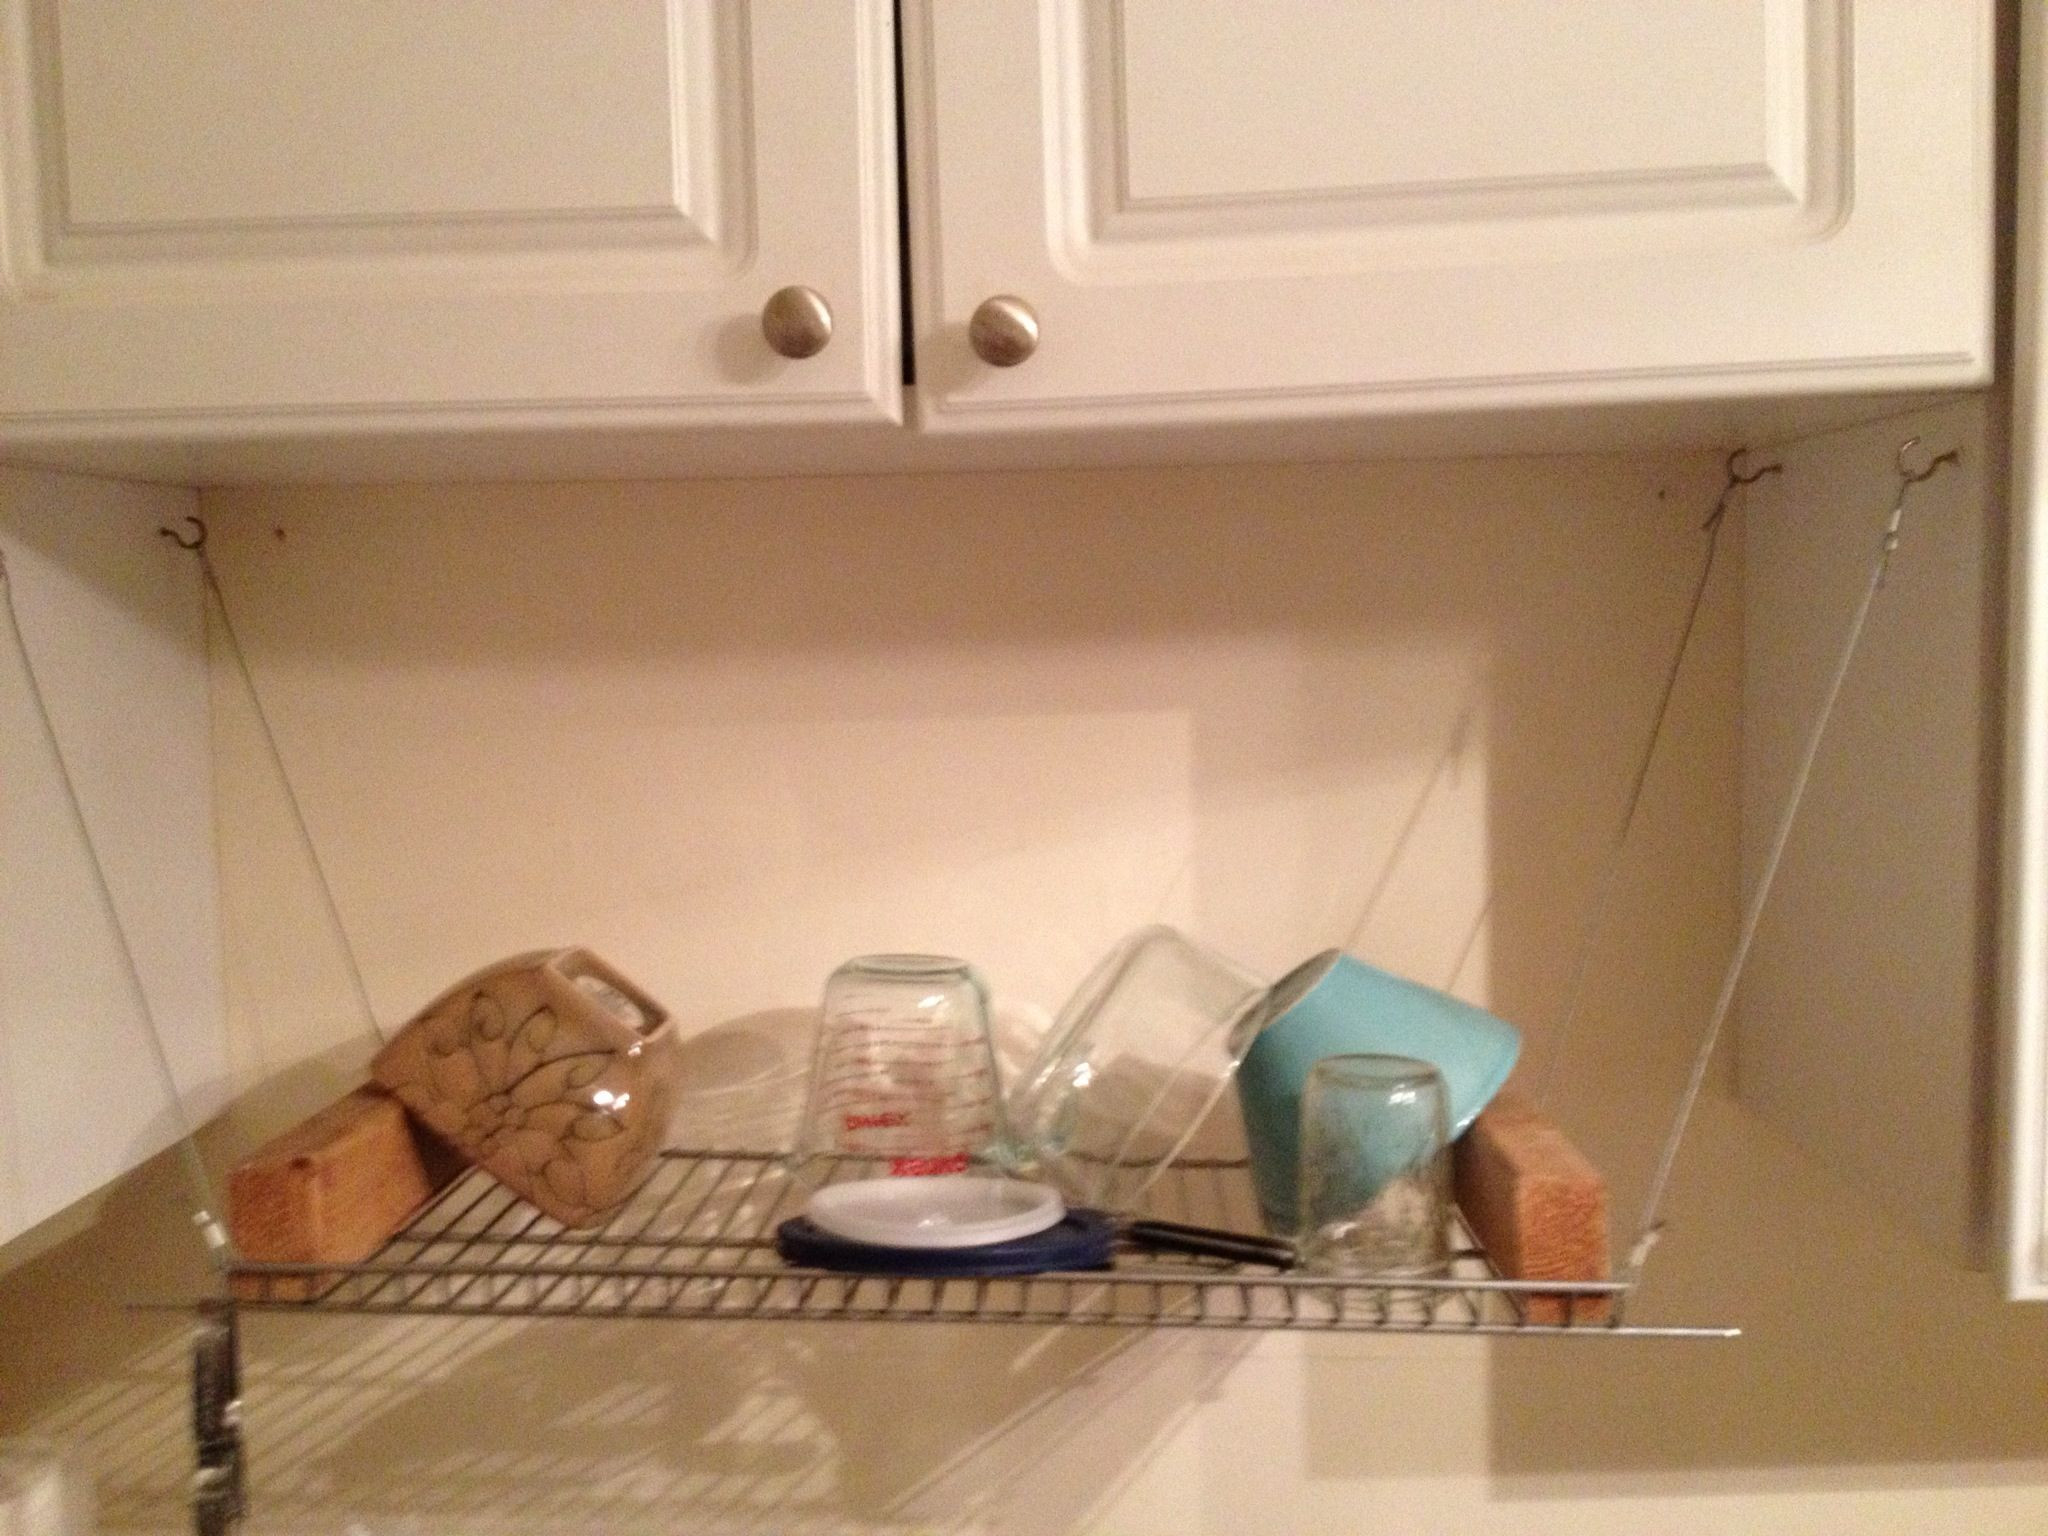 DIY Dish Drying Rack  DIY Dish Drying Rack DIY Ideas Pinterest